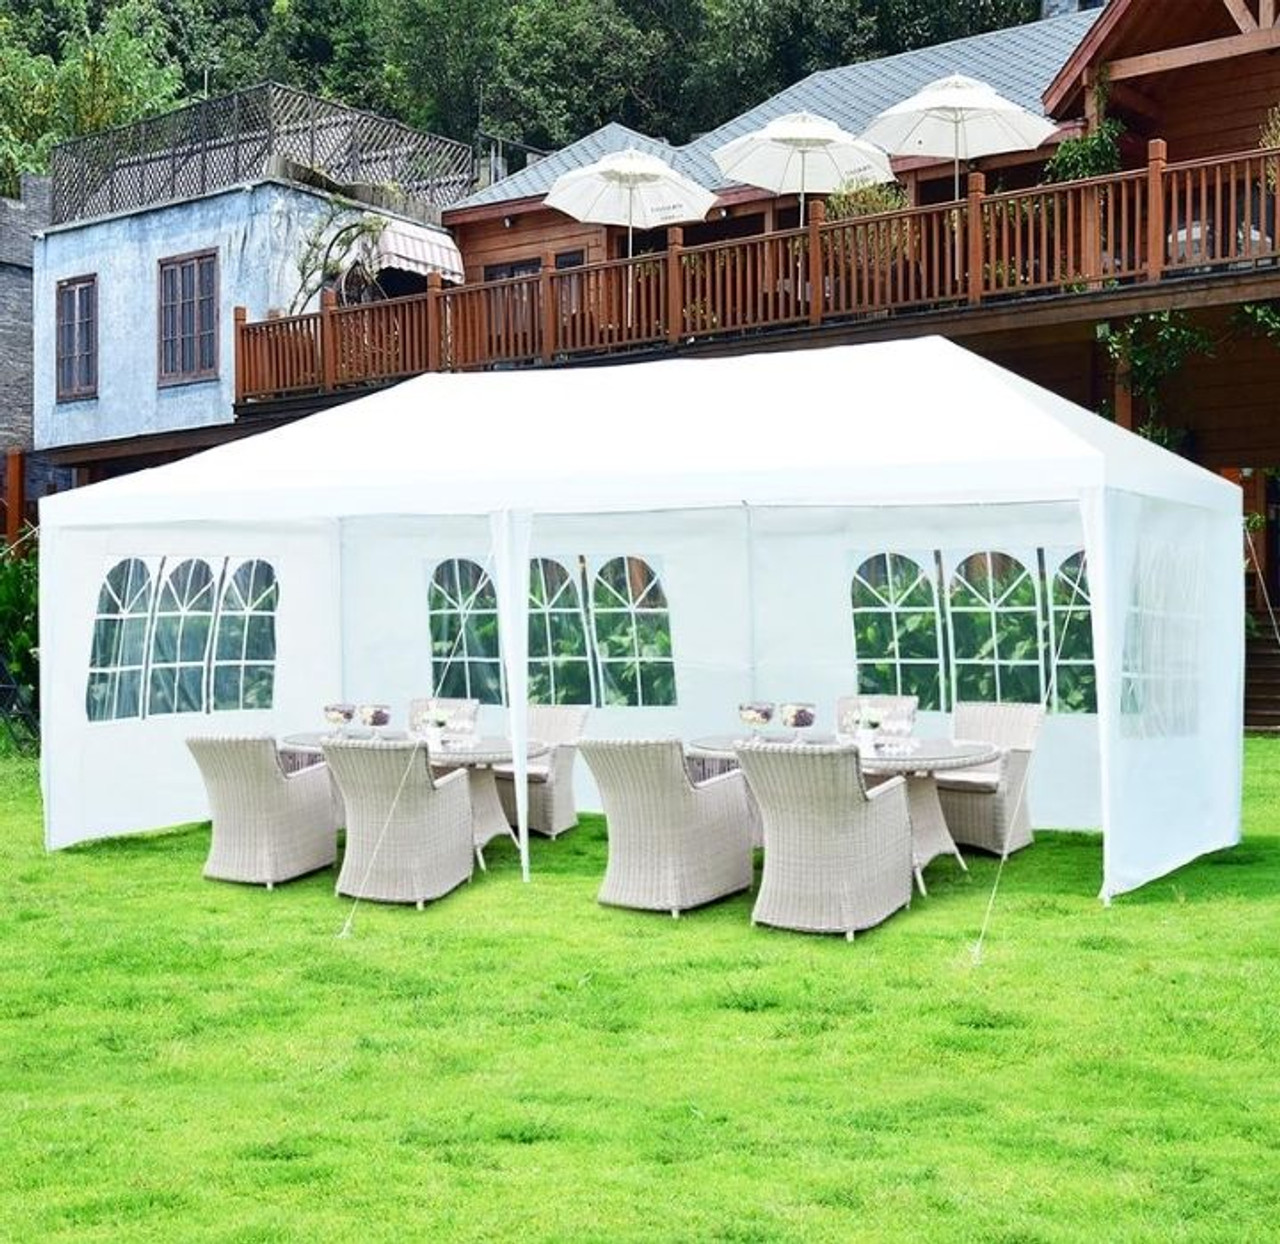 Heavy Duty 10′ x 20′ Canopy Tent with 4 Walls! 9.99 (REG 9.99) + Free Shipping at Until Gone!